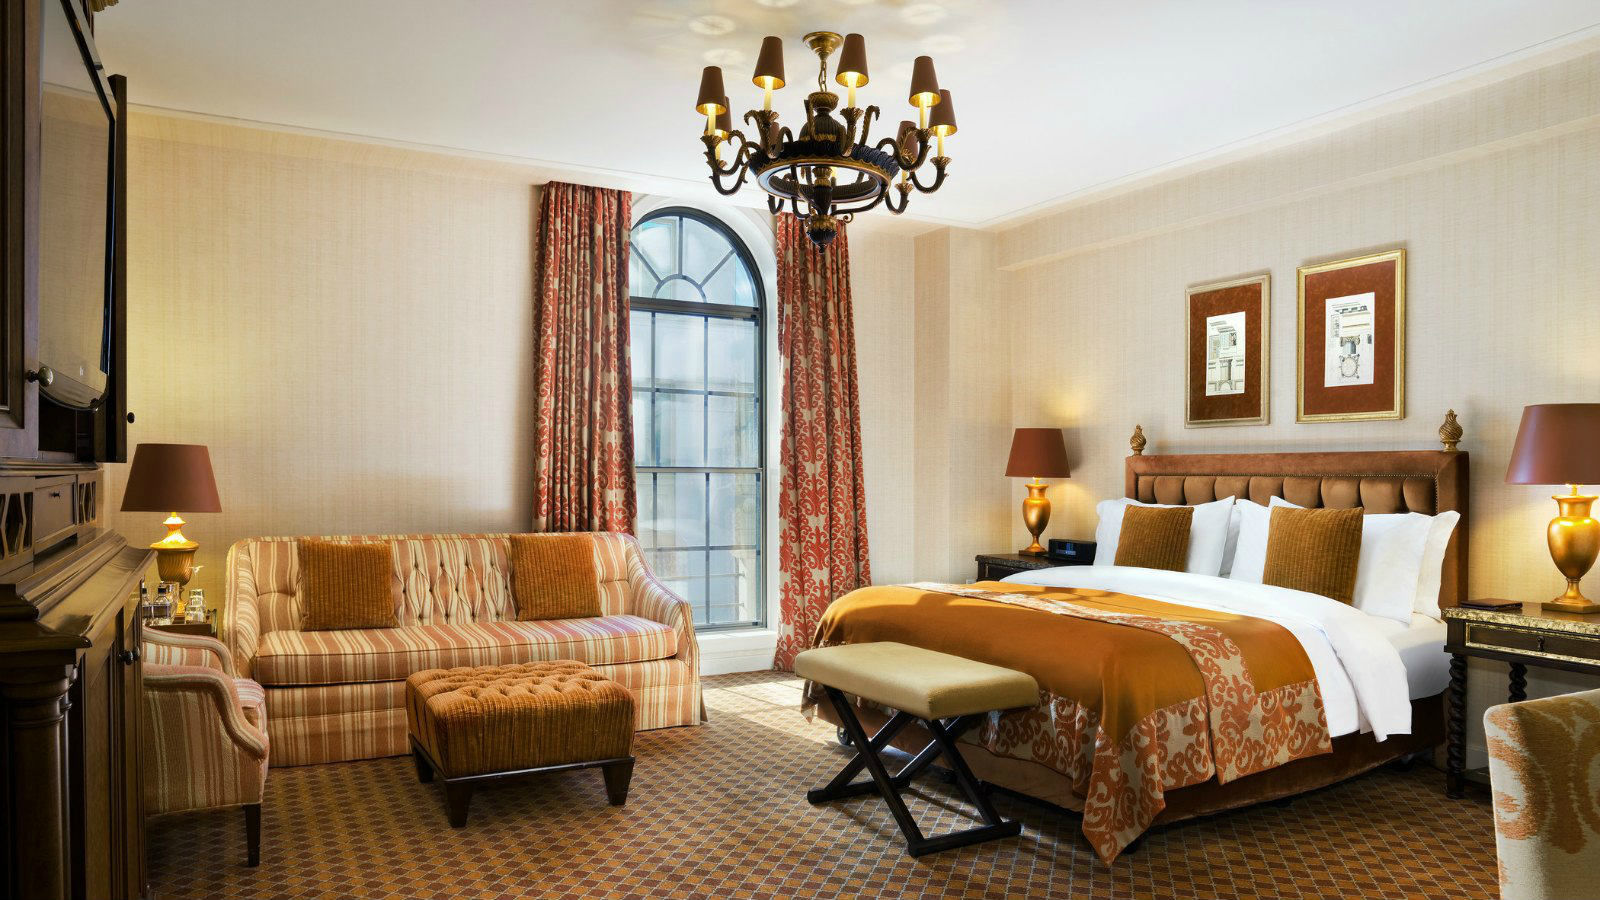 The St. Regis Washington, D.C. - Metropolitan Suite